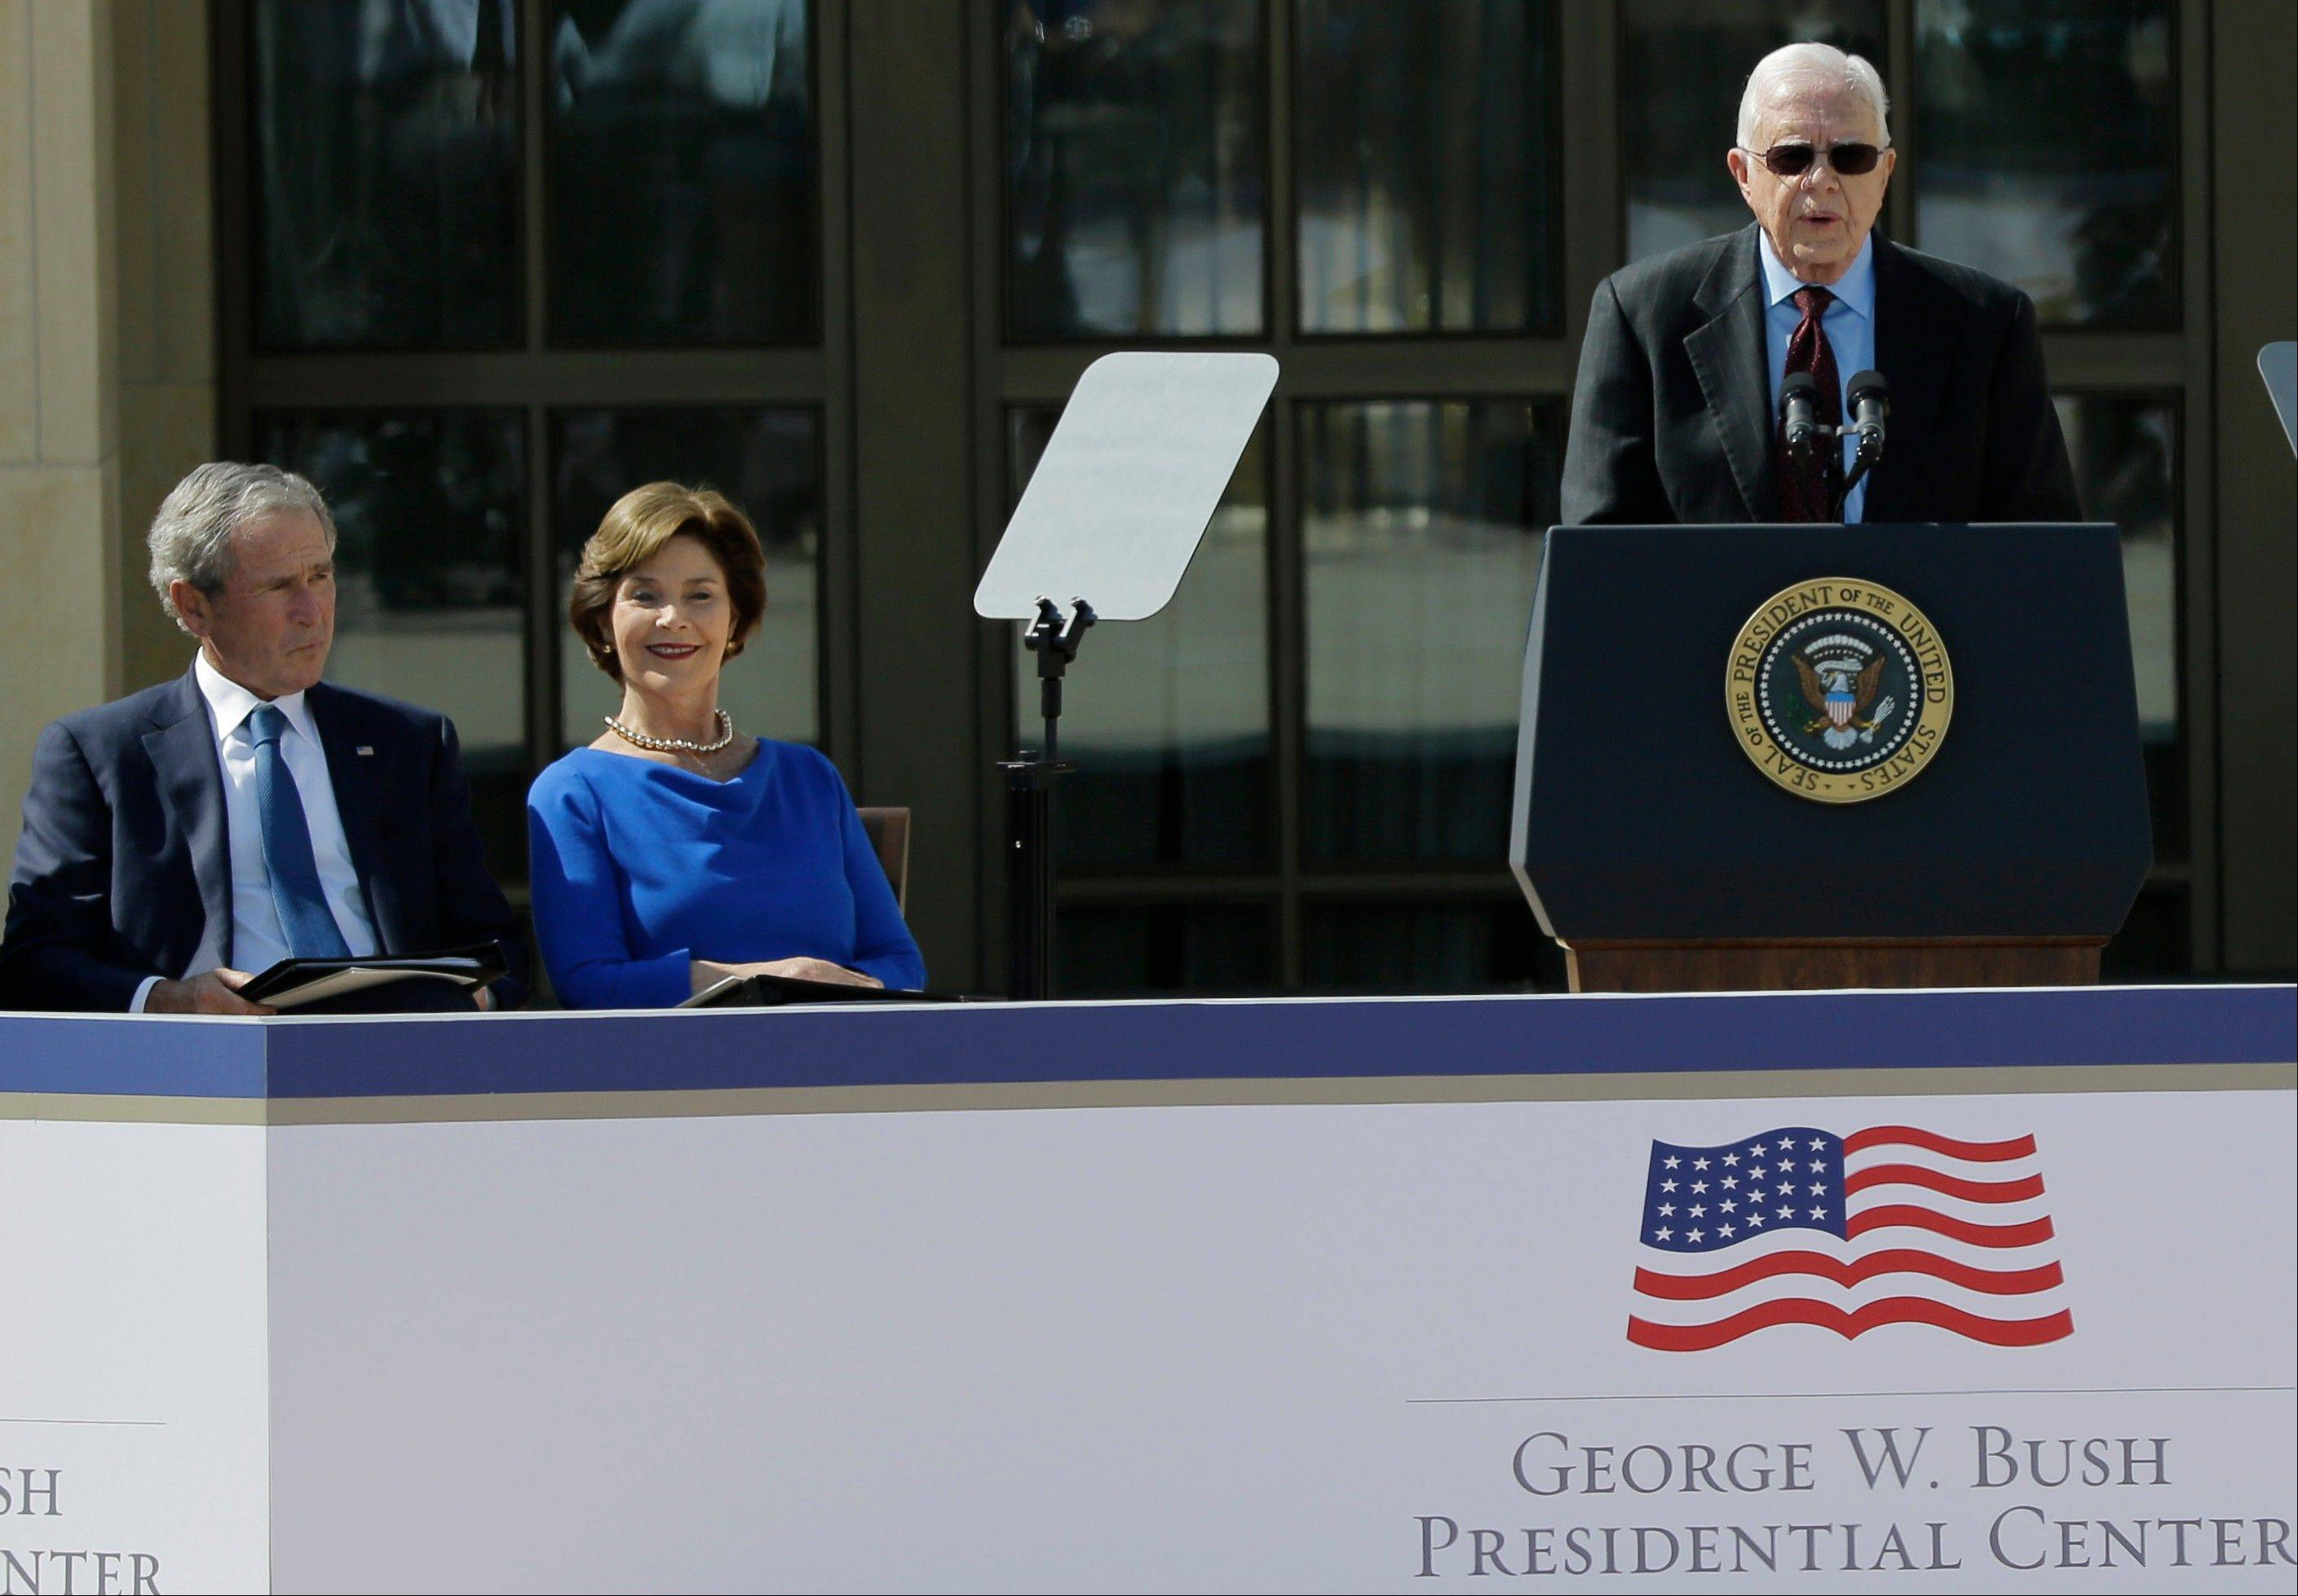 Former President George W. Bush and his wife Laura Bush listen to former president Jimmy Carter during the dedication of the George W. Bush Presidential Center Thursday, April 25, 2013, in Dallas.